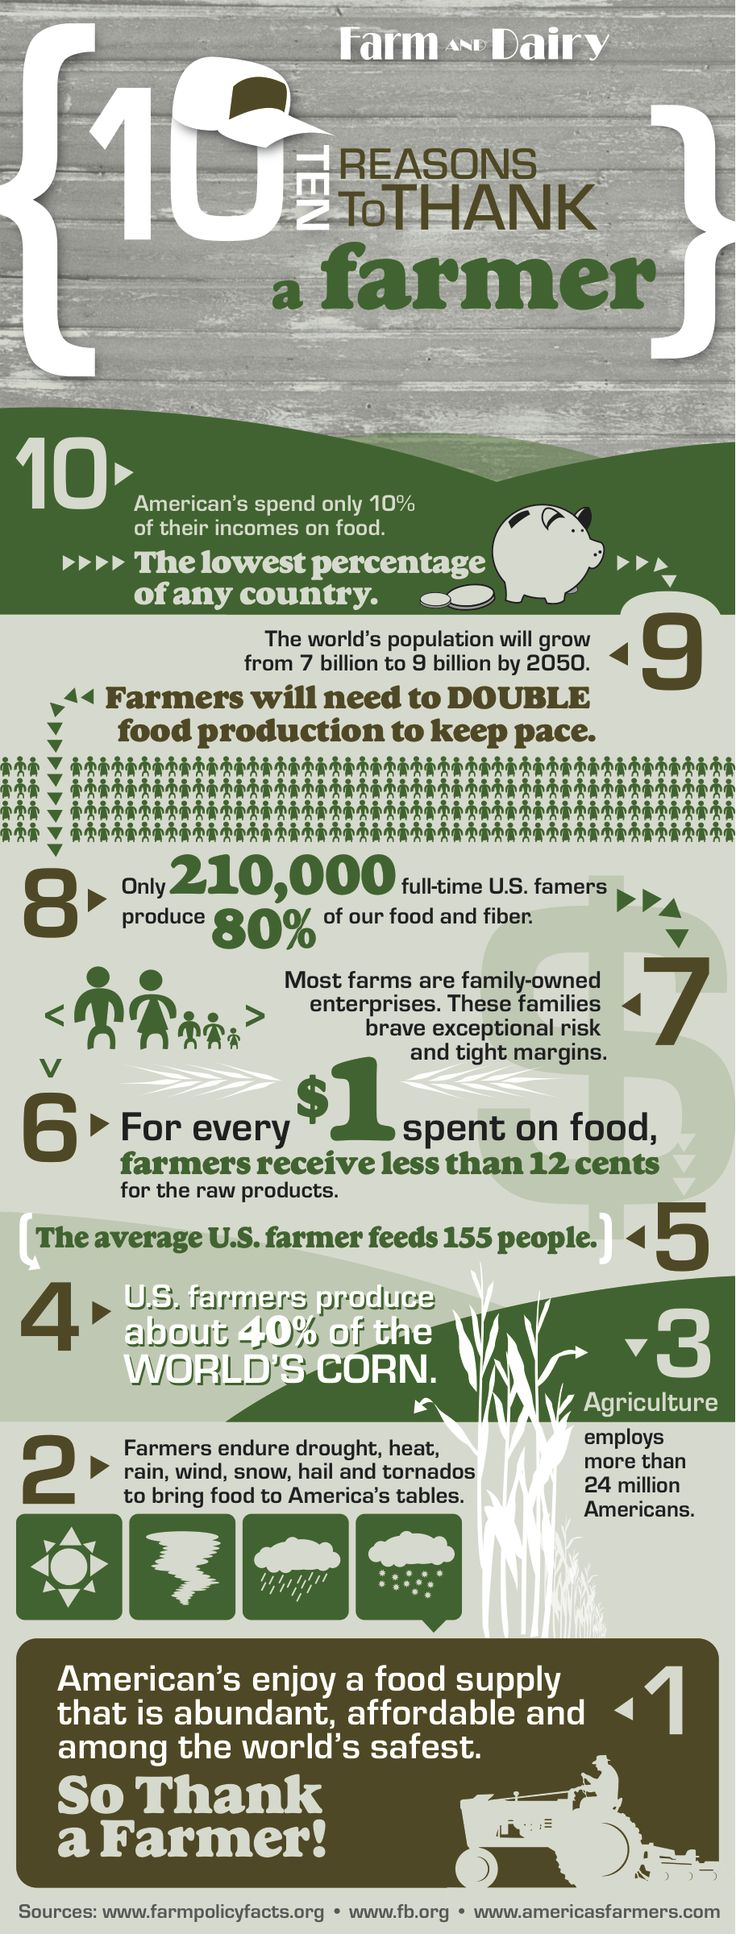 Happy National Ag Day! Here's 10 reasons to thank a farmer!